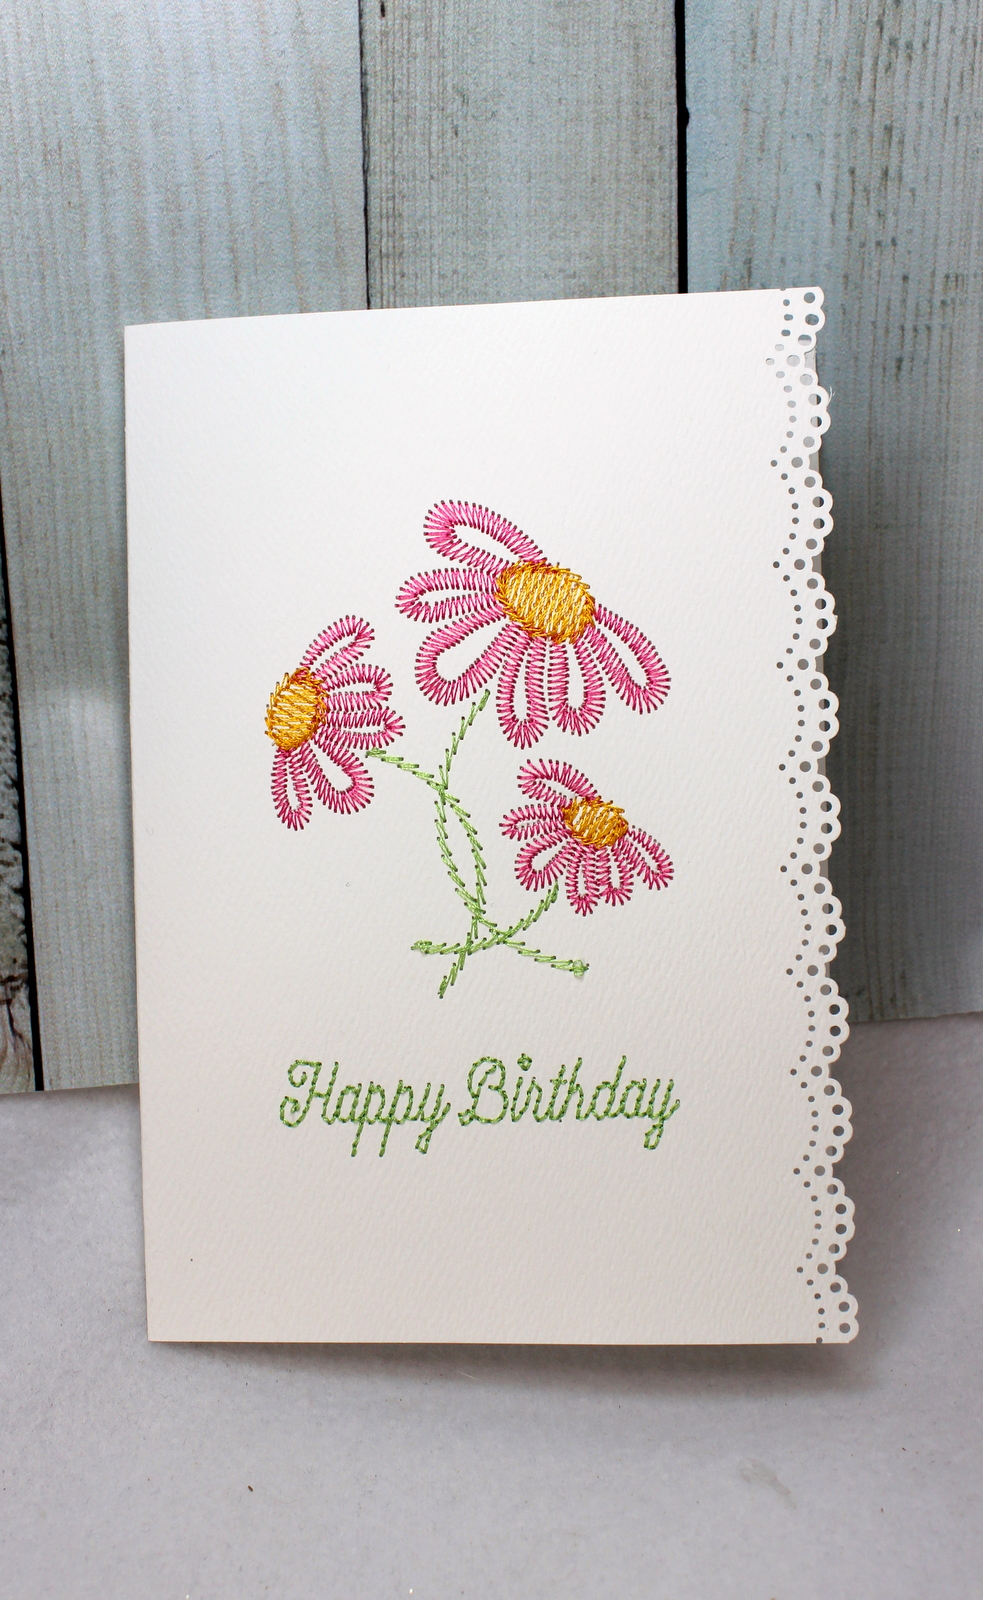 happy birthday greeting card · oma's place